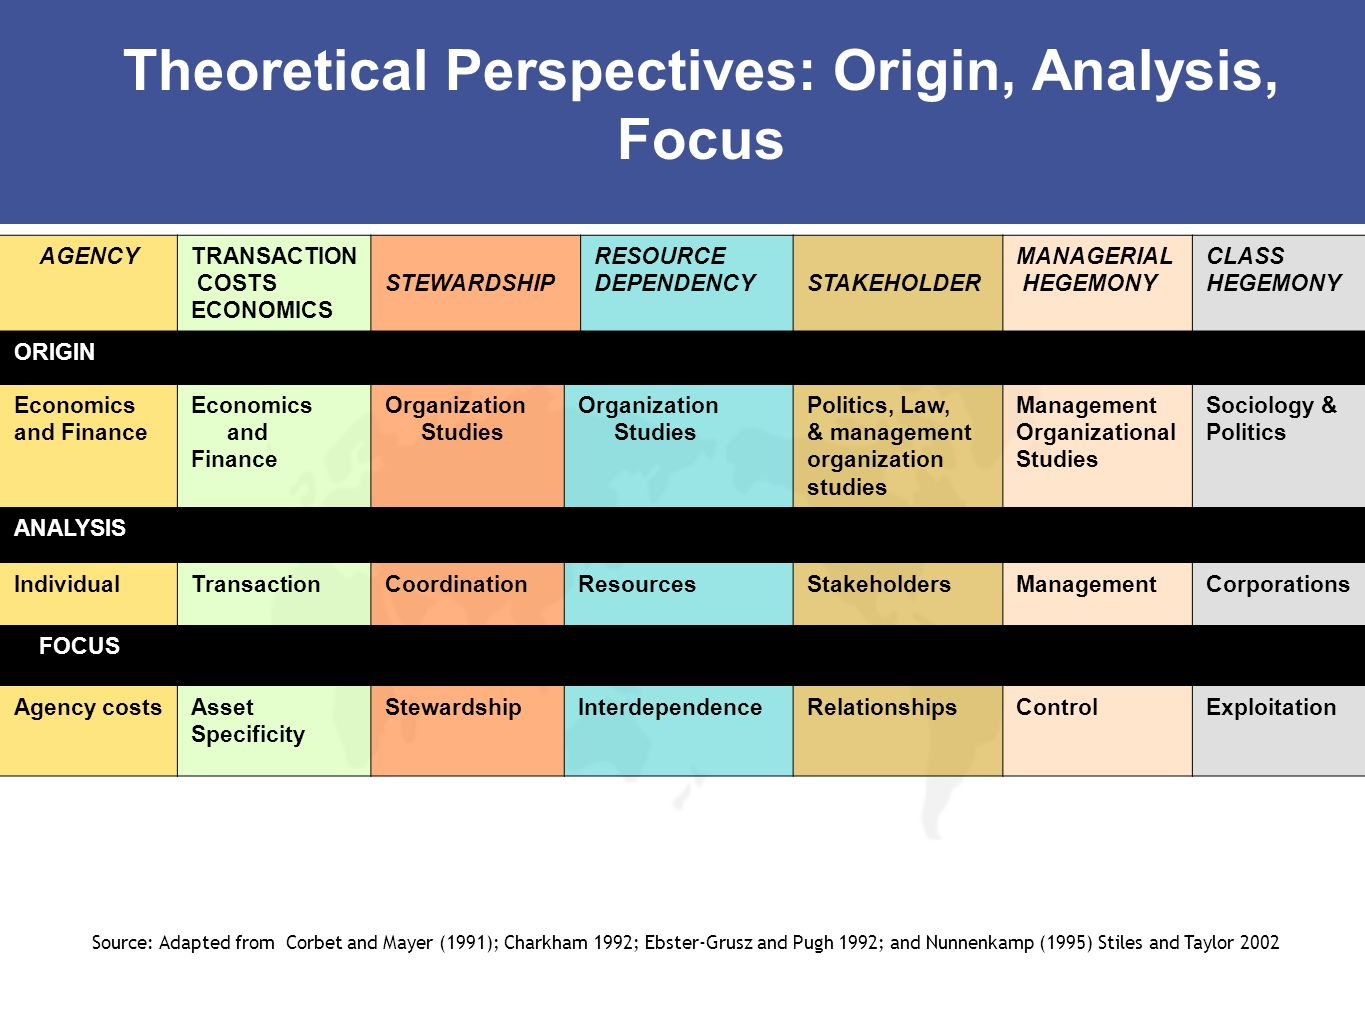 Theoretical Perspectives: Origin, Analysis, Focus